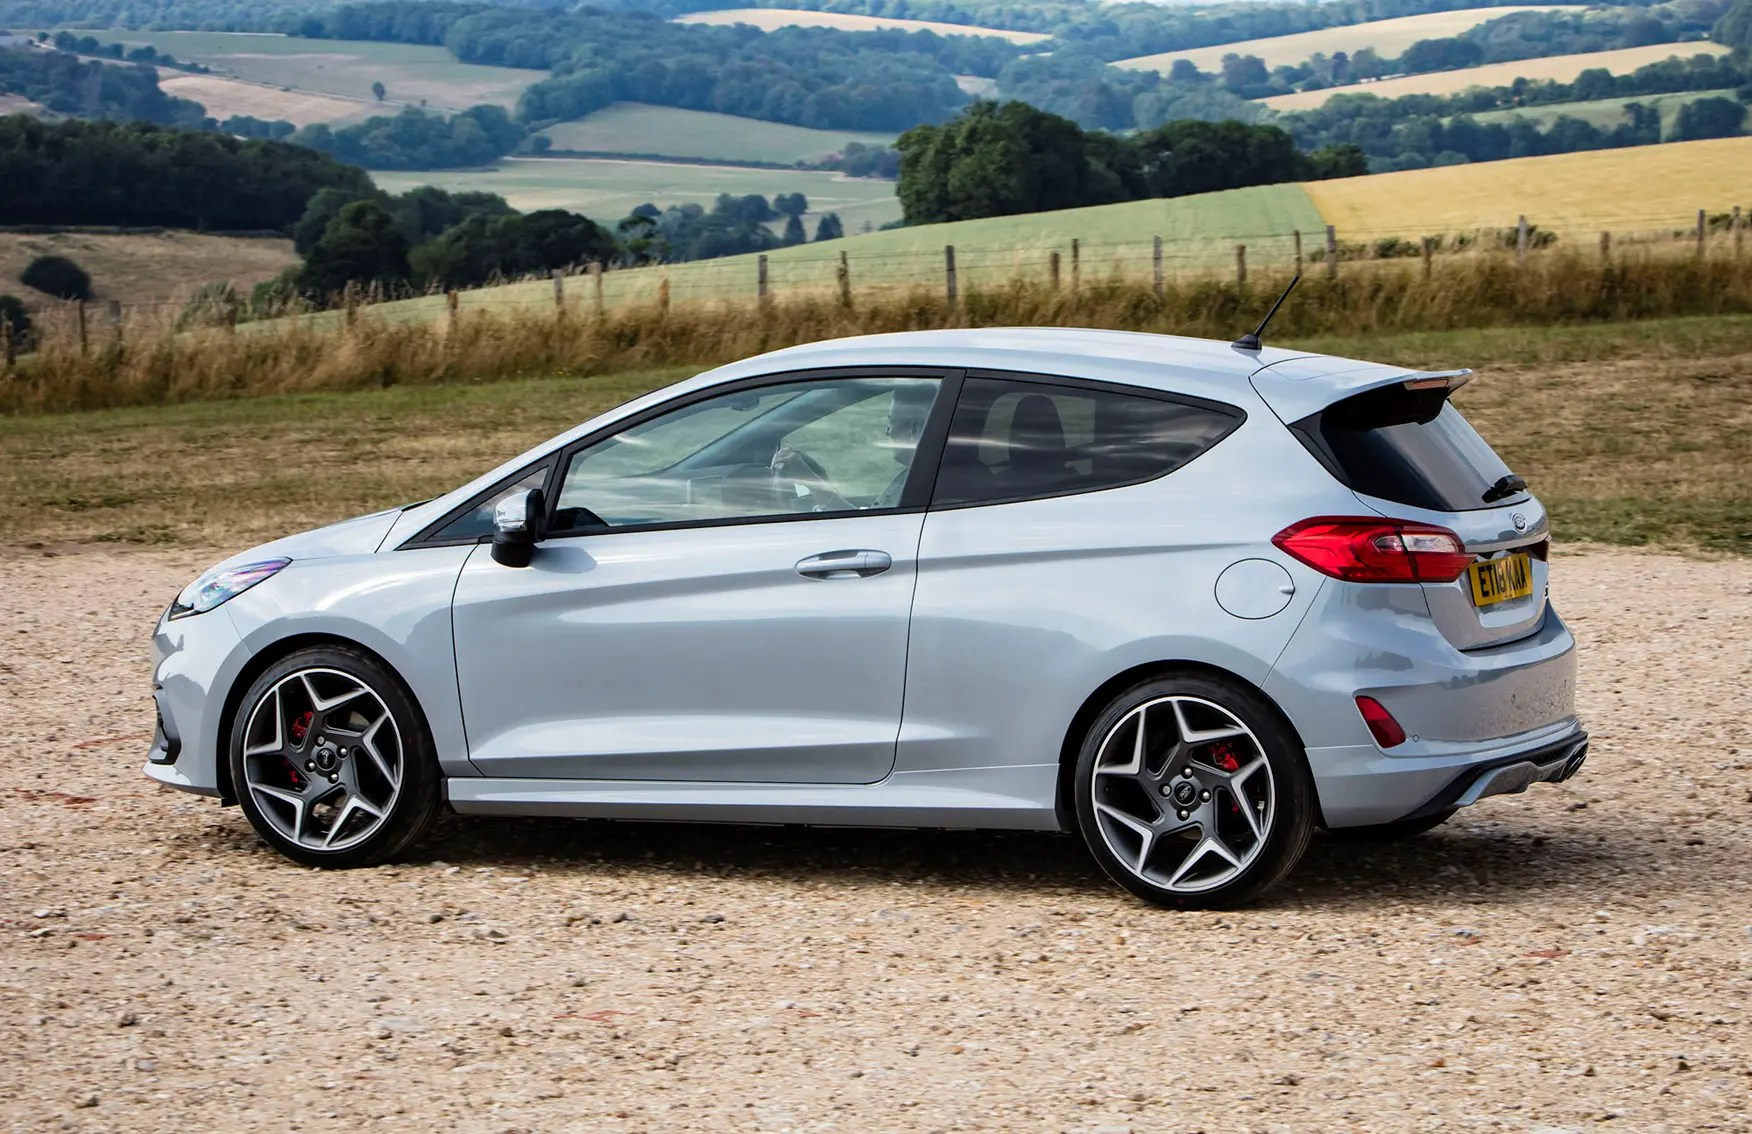 Ford Fiesta St Ford Fiesta St 2018 Photos Parkers